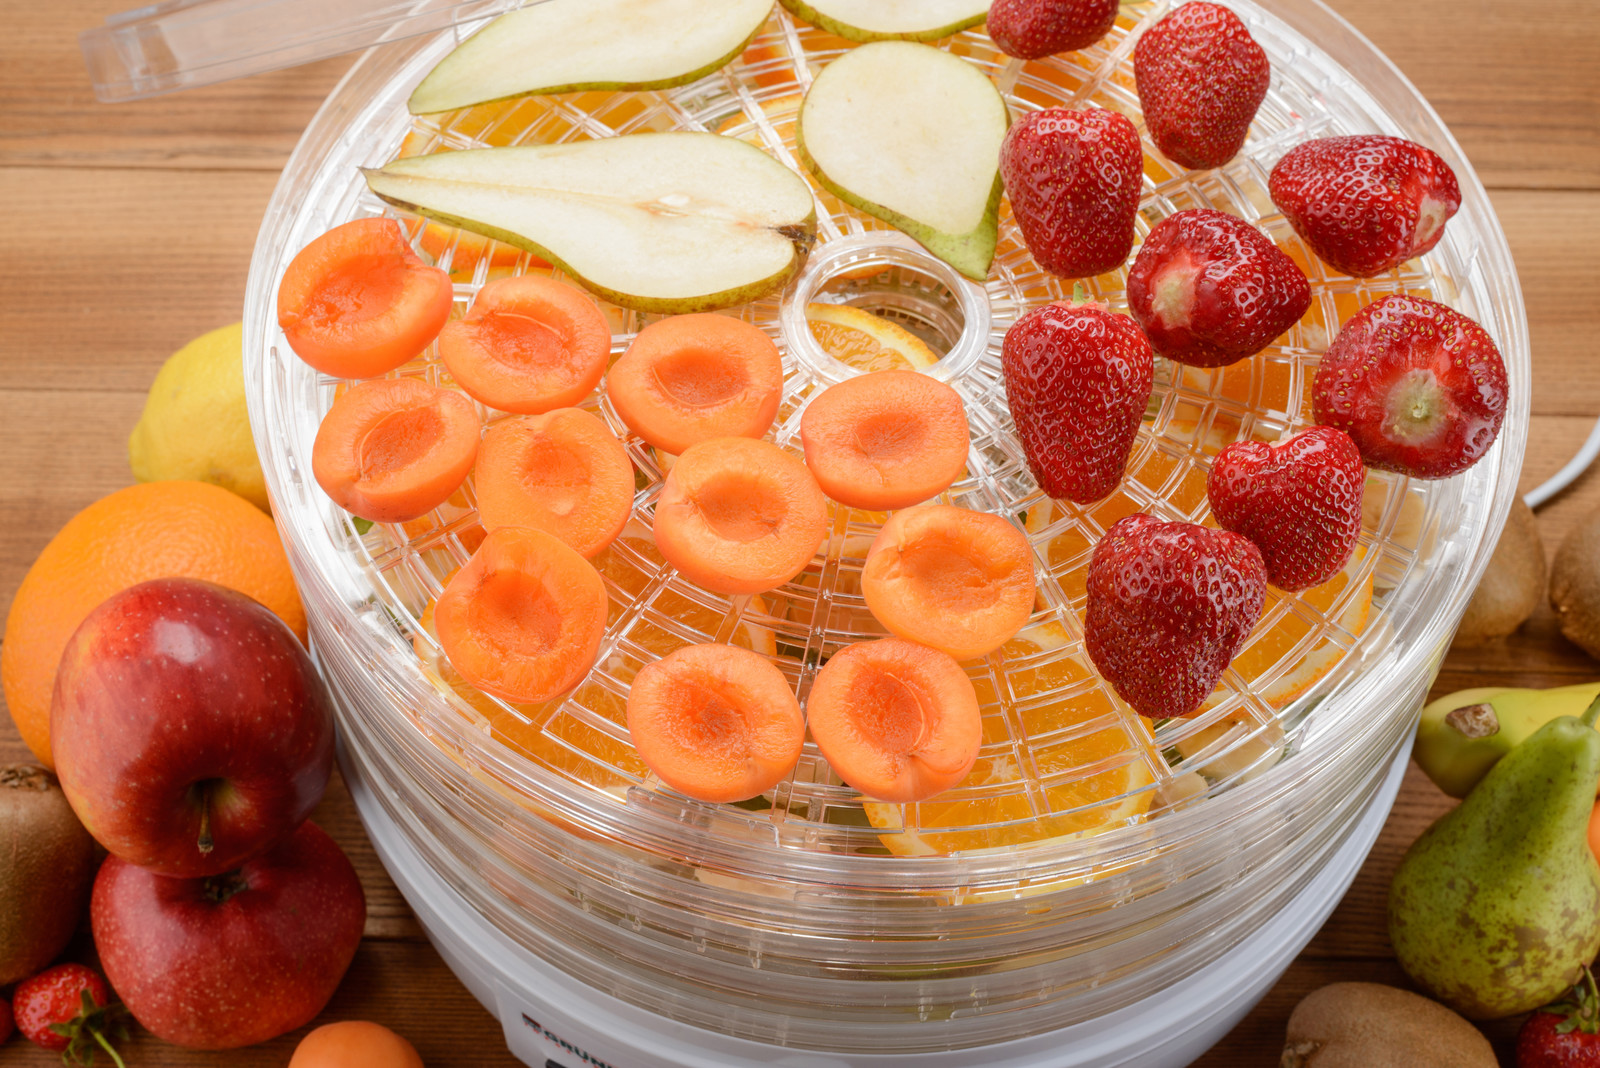 Process of drying fruits in a electronic multi-rack dehydrator. making tasty vegan snacks at home.